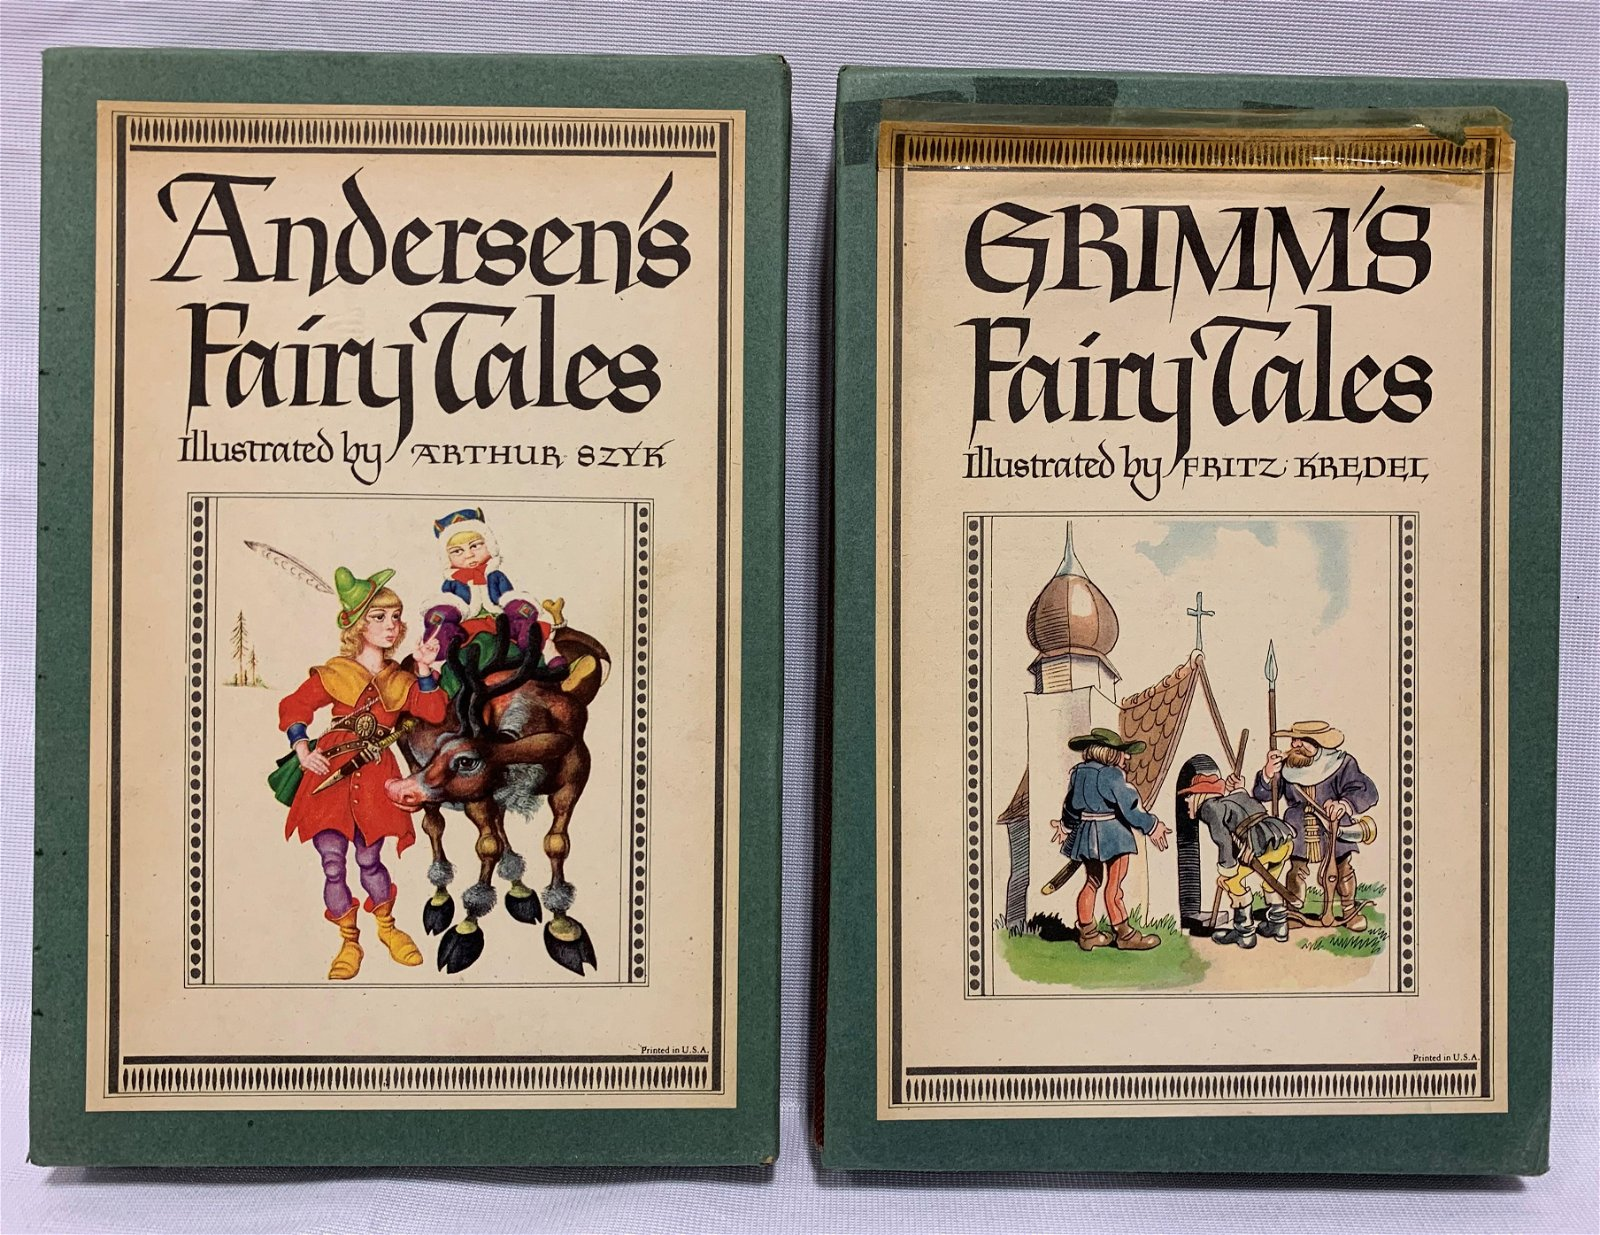 Grimm's and Andersen's Fairy Tales Books